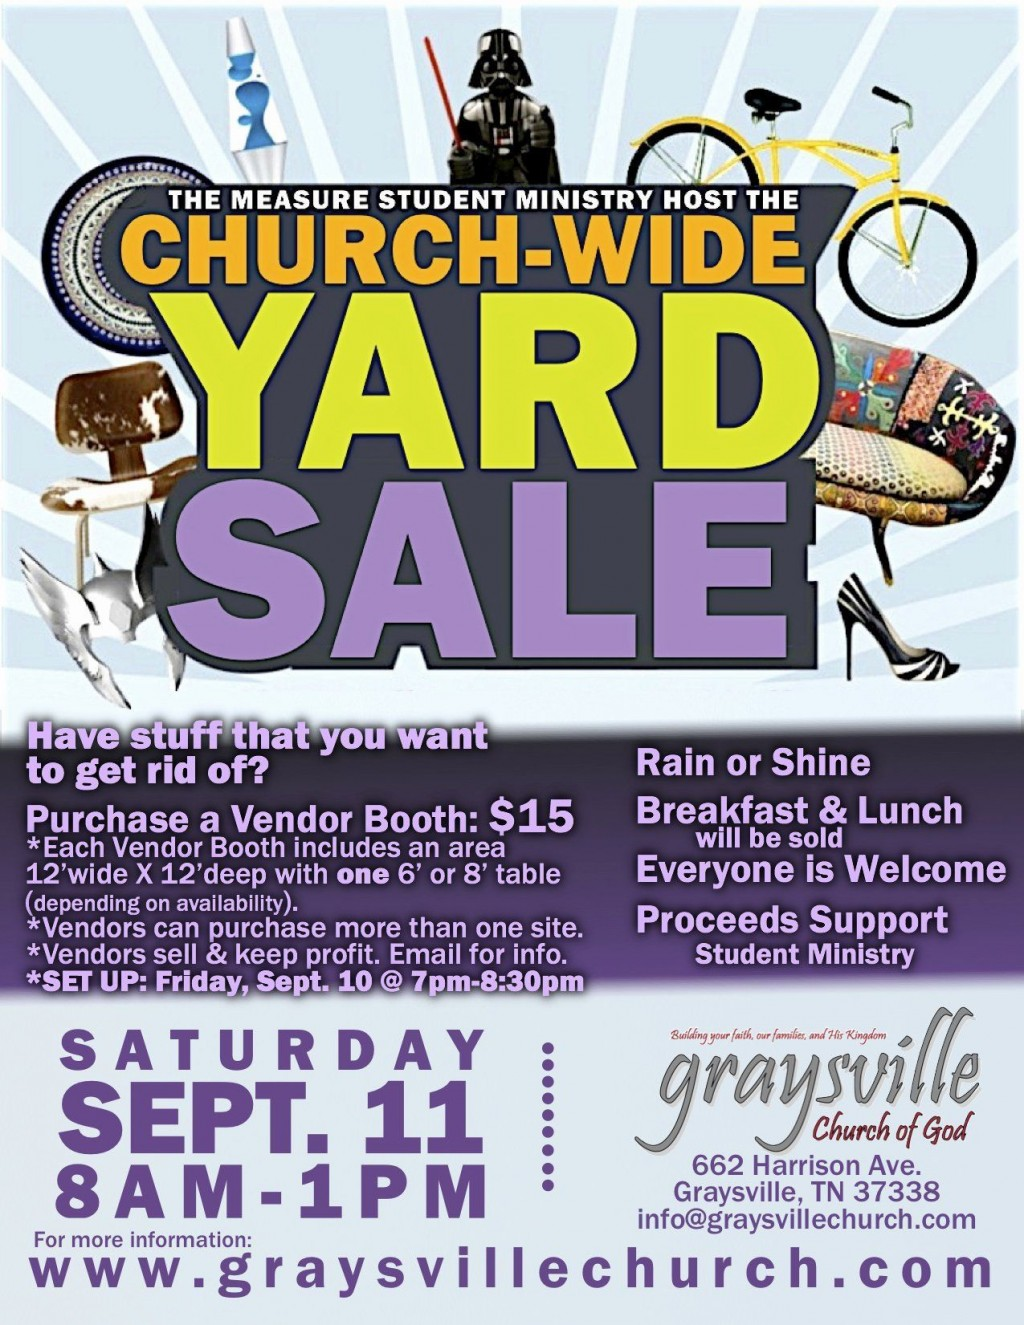 001 Fascinating Yard Sale Flyer Template Design  Free Garage Microsoft WordLarge